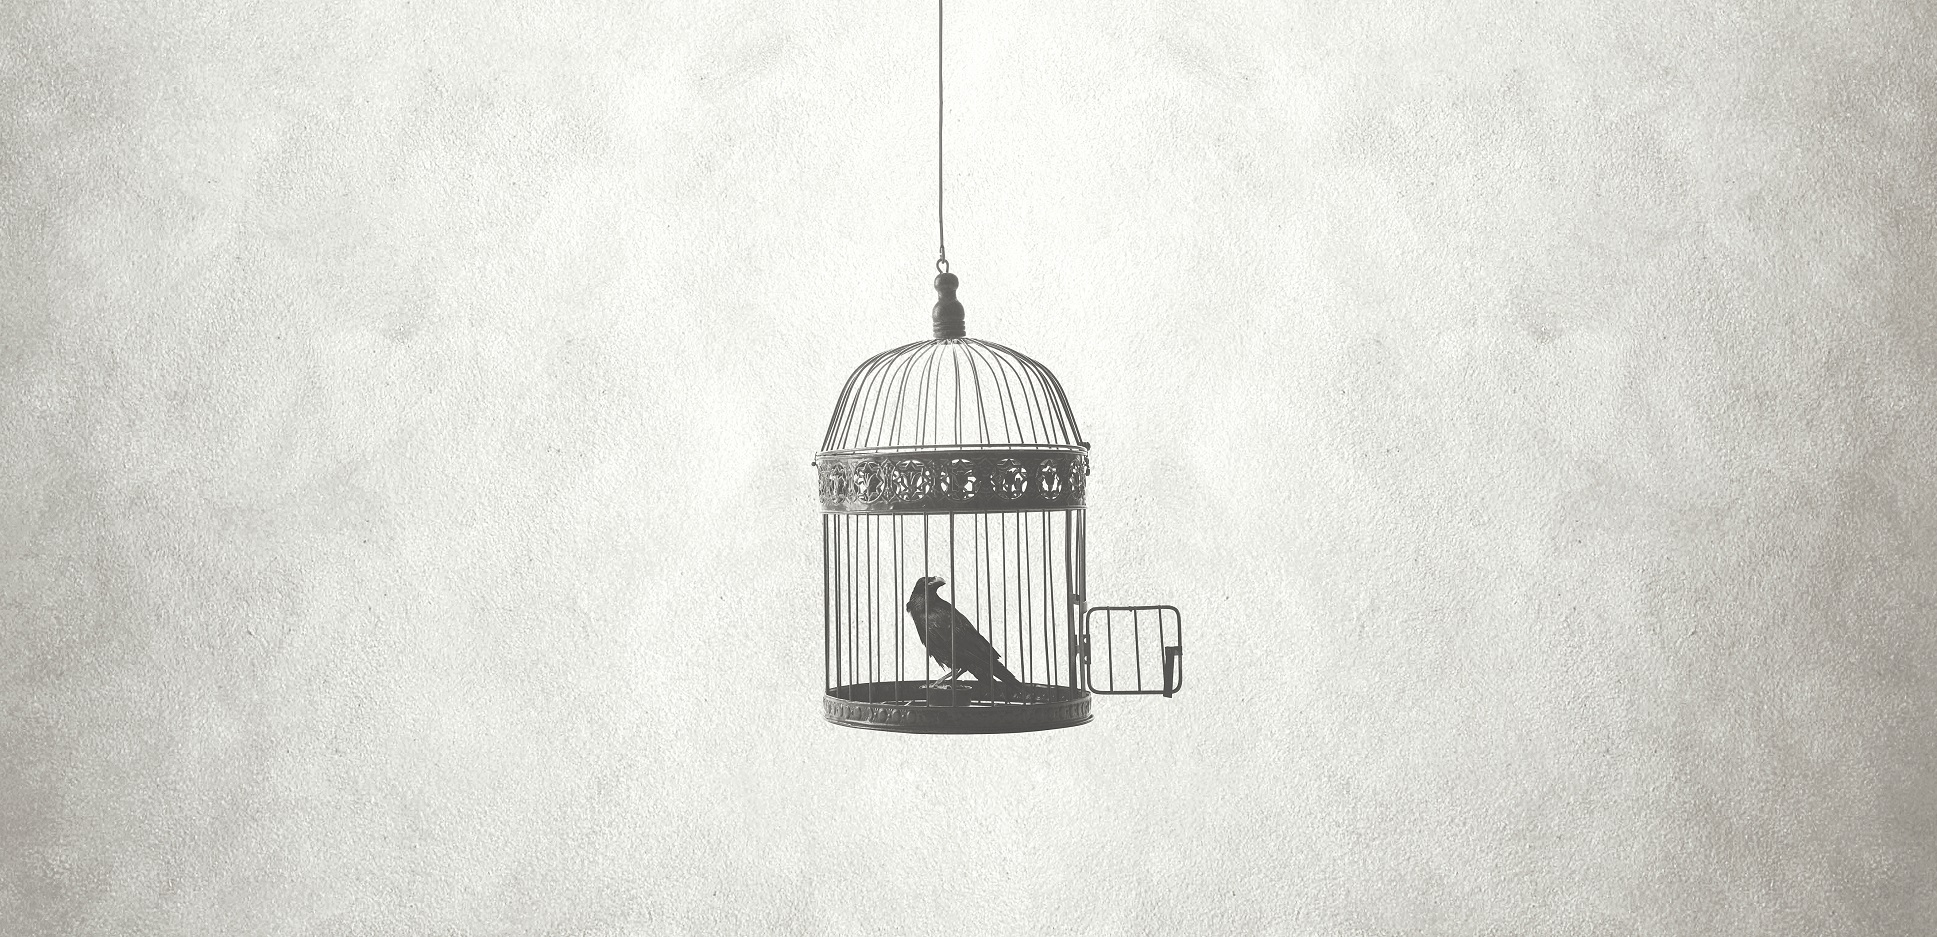 bird in the cage as a symbol of fear